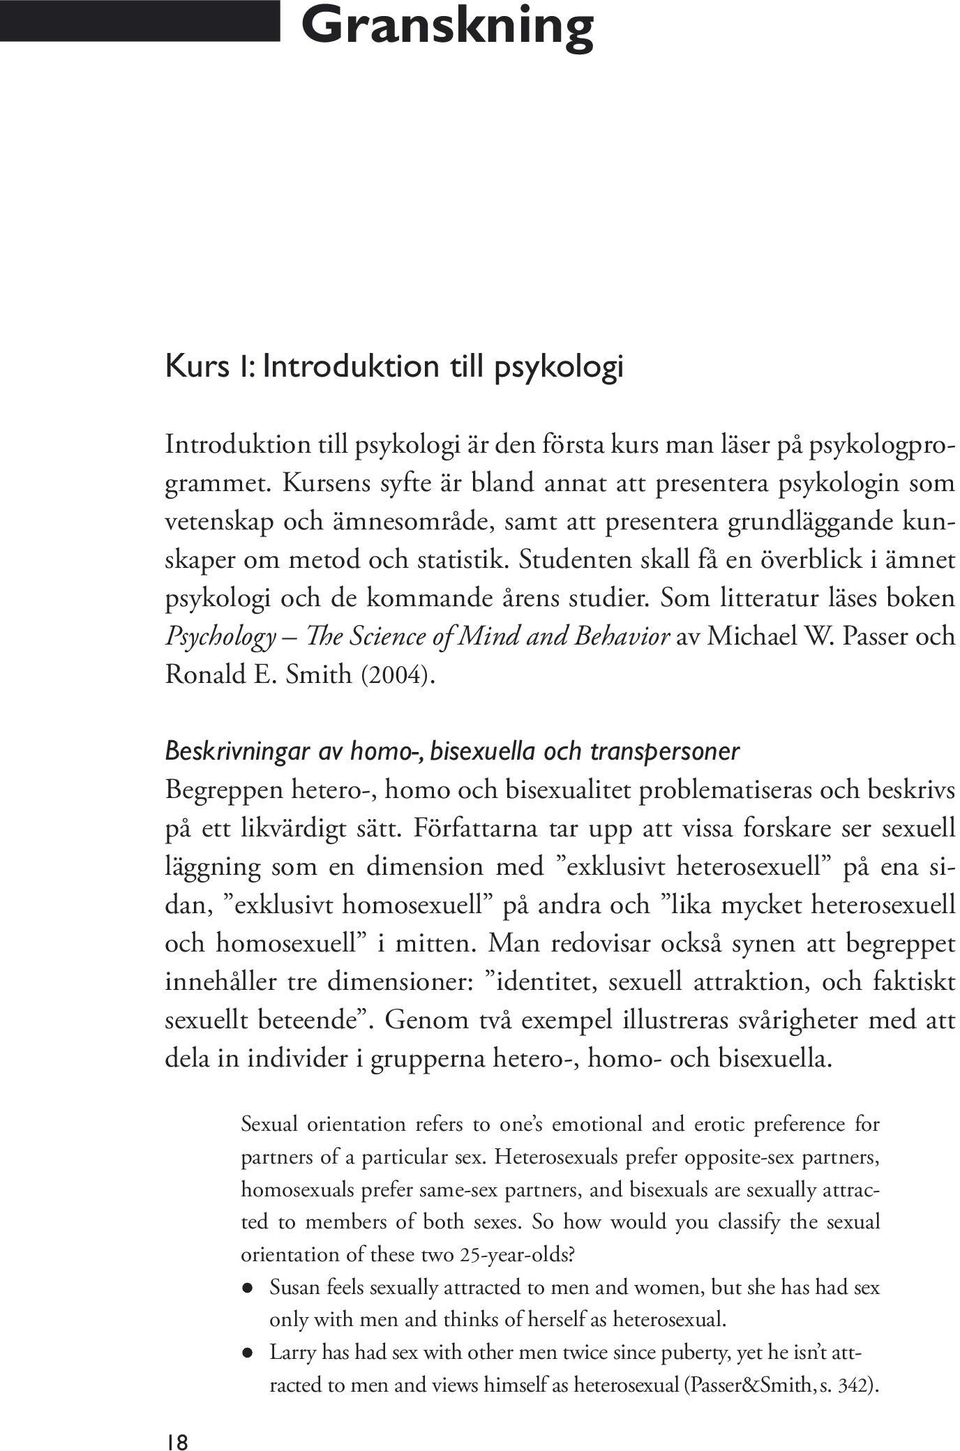 Studenten skall få en överblick i ämnet psykologi och de kommande årens studier. Som litteratur läses boken Psychology The Science of Mind and Behavior av Michael W. Passer och Ronald E. Smith (2004).